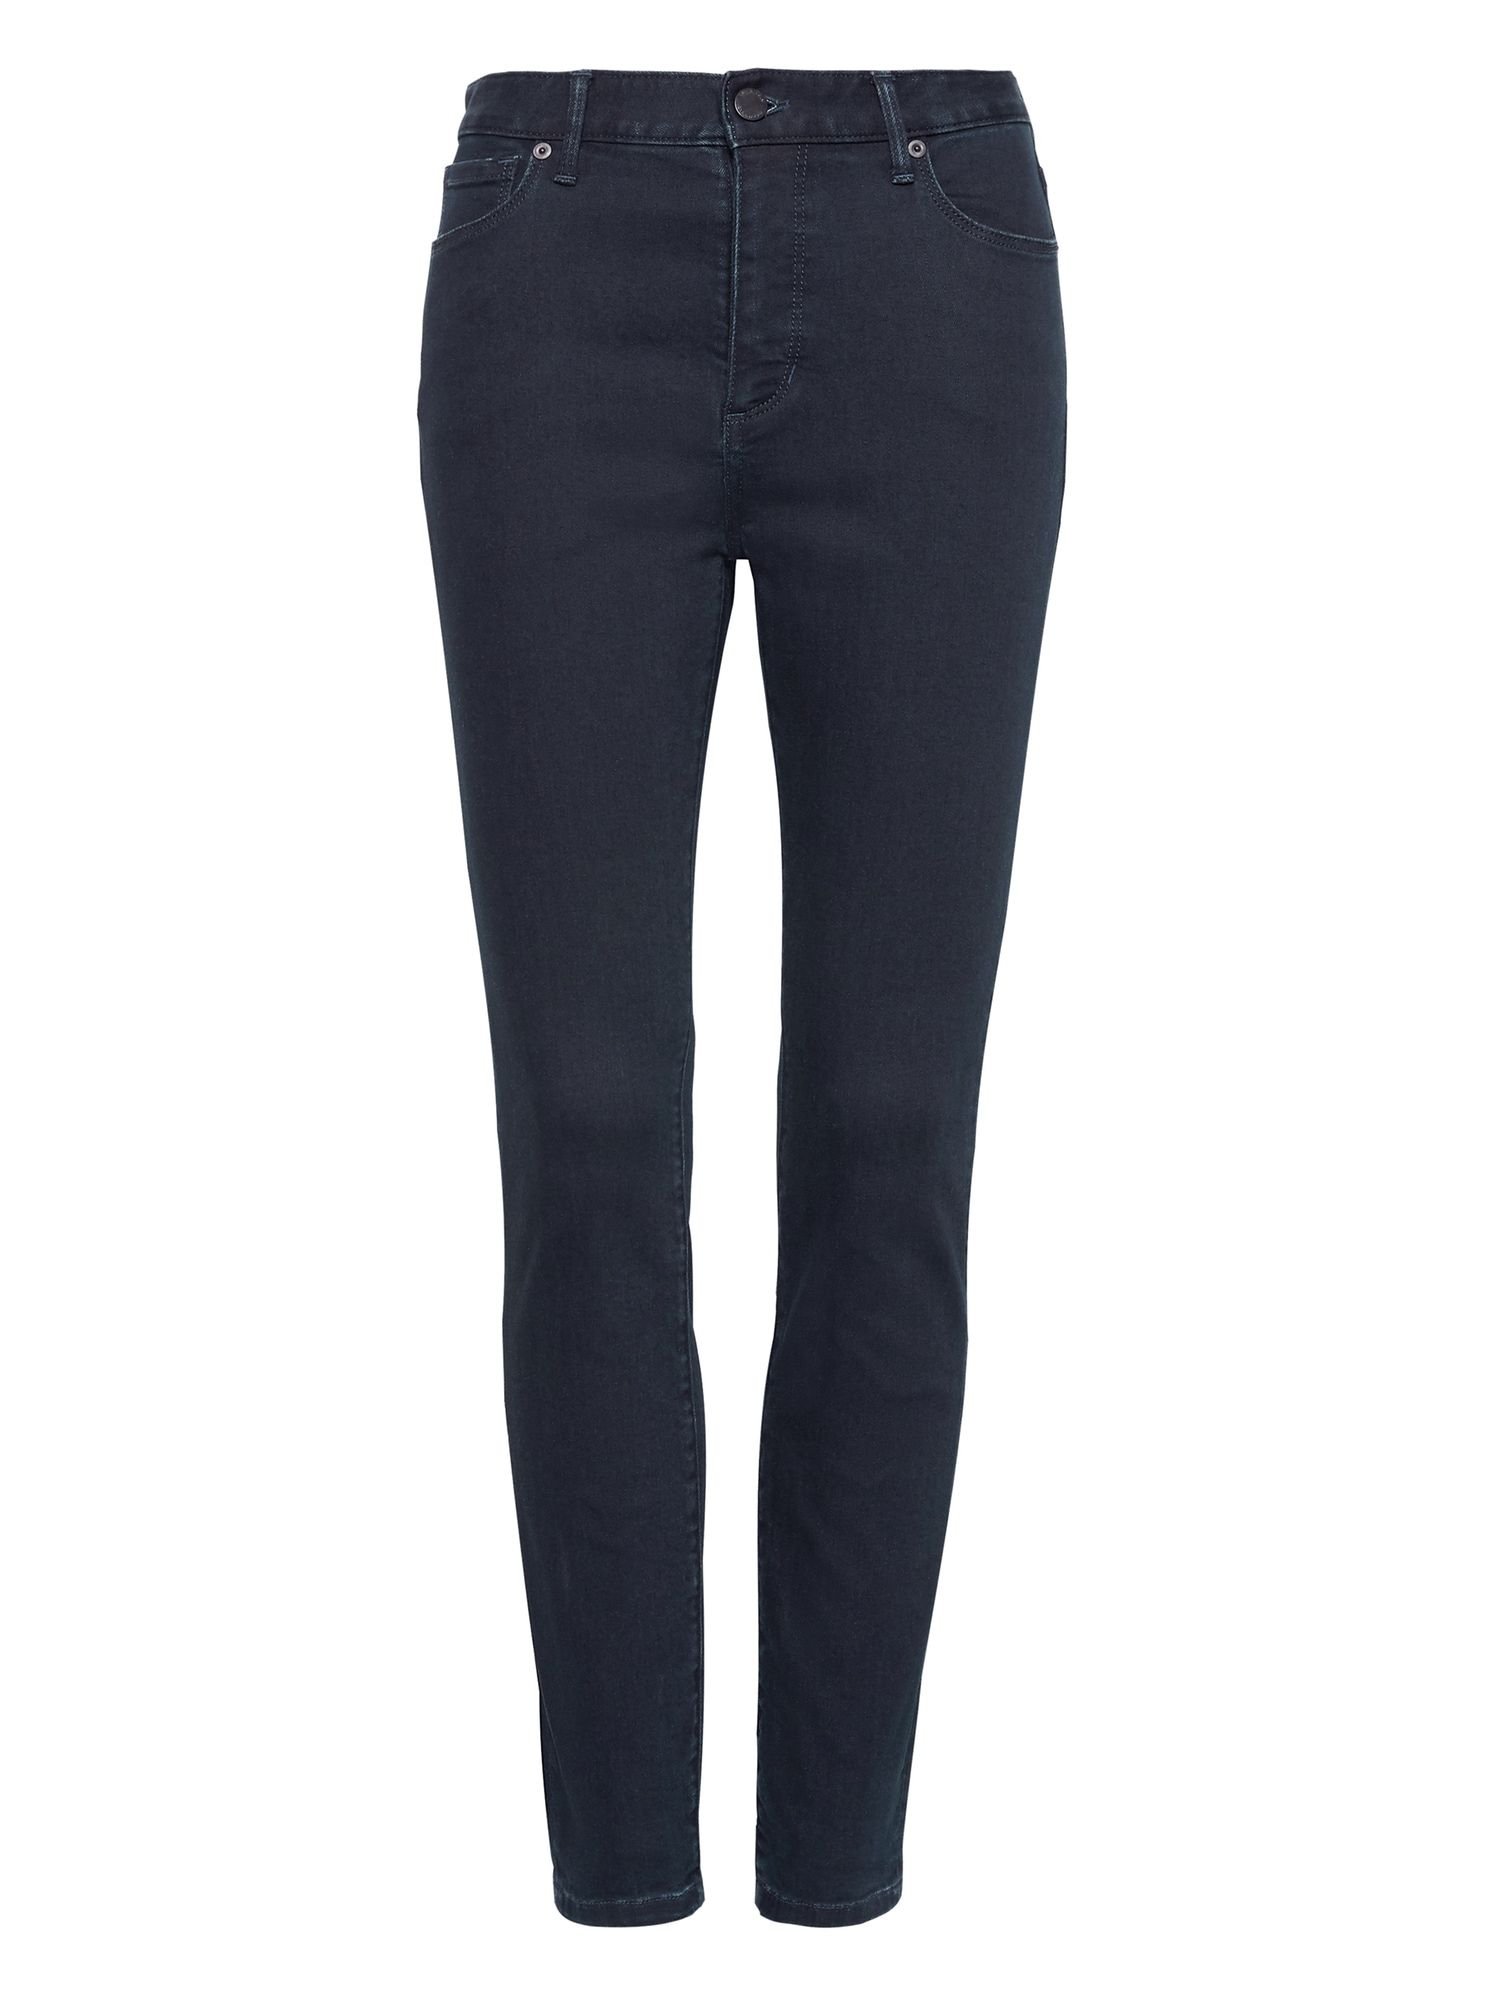 HighRise Skinny Ankle Jean Banana Republic Pakistani